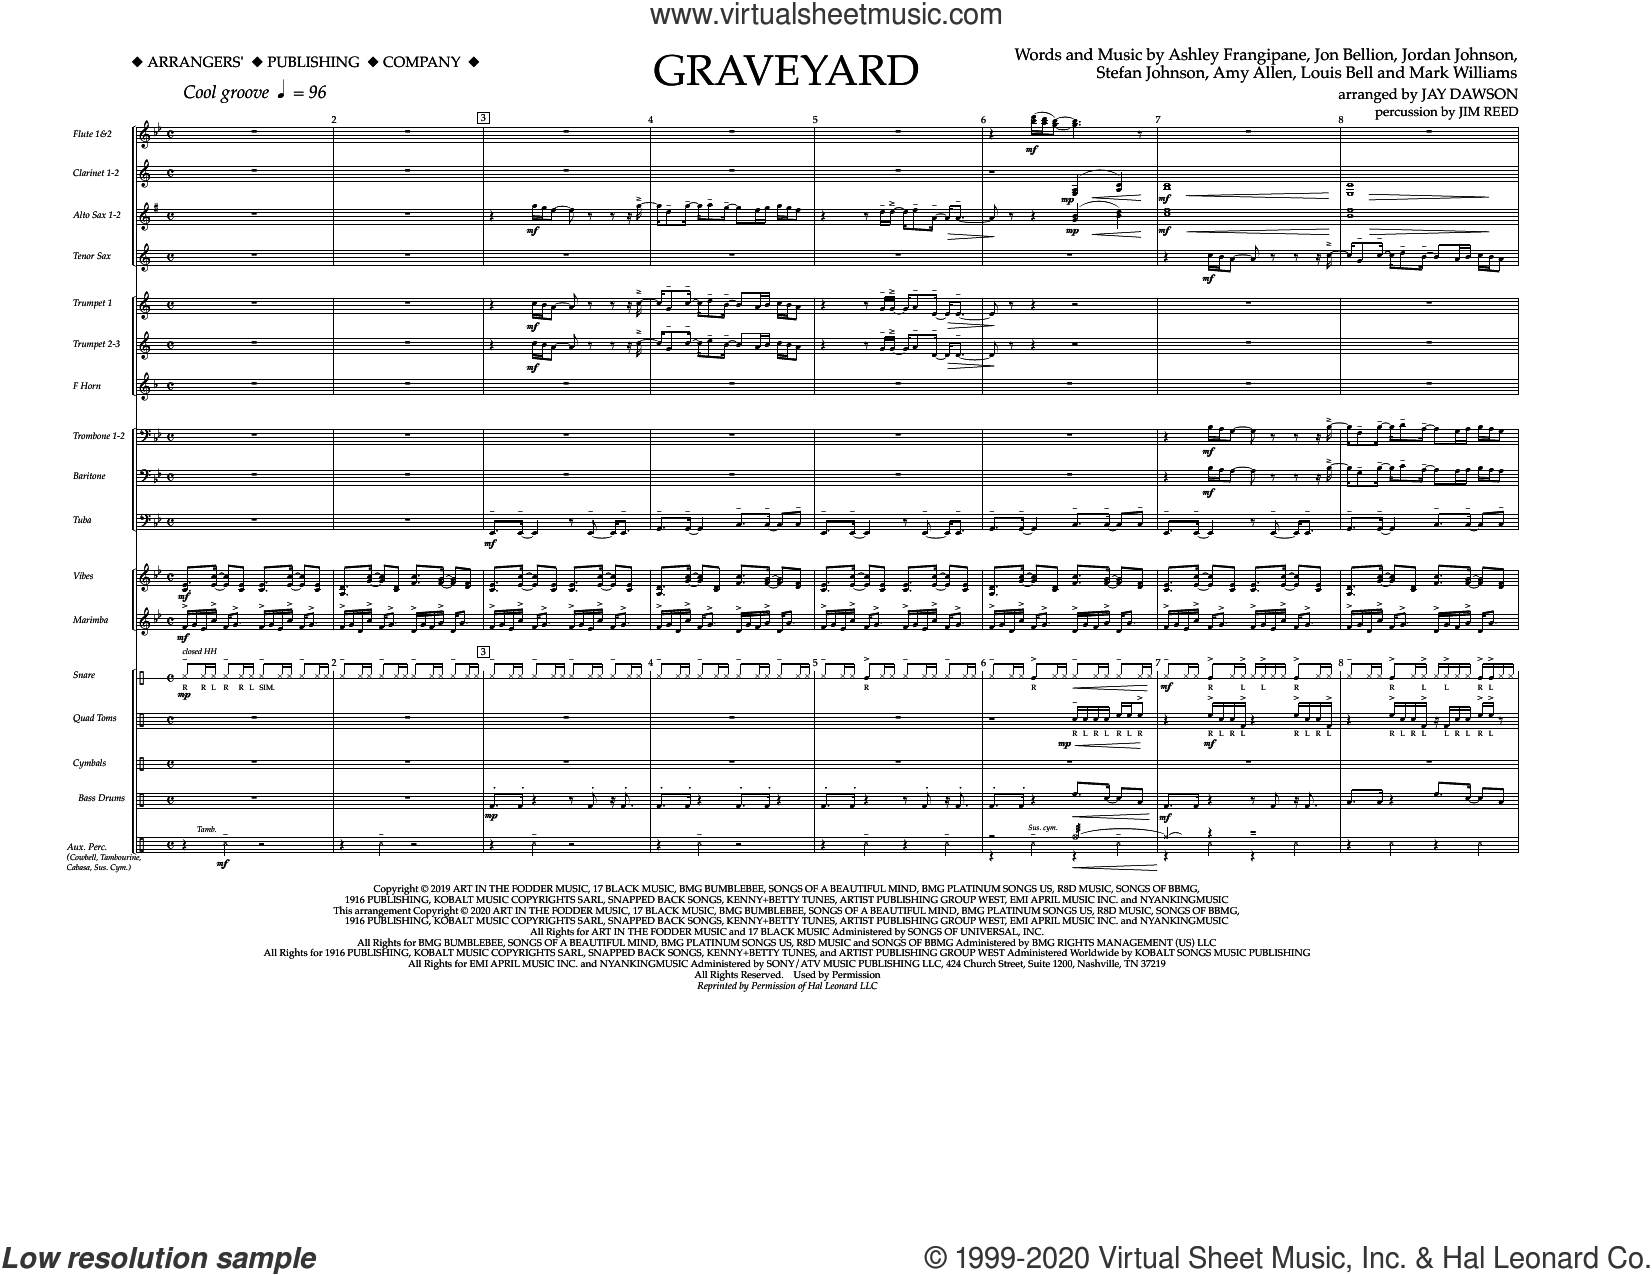 Graveyard (arr. Jay Dawson) (COMPLETE) sheet music for marching band by Mark Williams, Amy Allen, Ashley Frangipane, Halsey, Jay Dawson, Jim Reed, Jon Bellion, Jordan Johnson, Louis Bell and Stefan Johnson, intermediate skill level